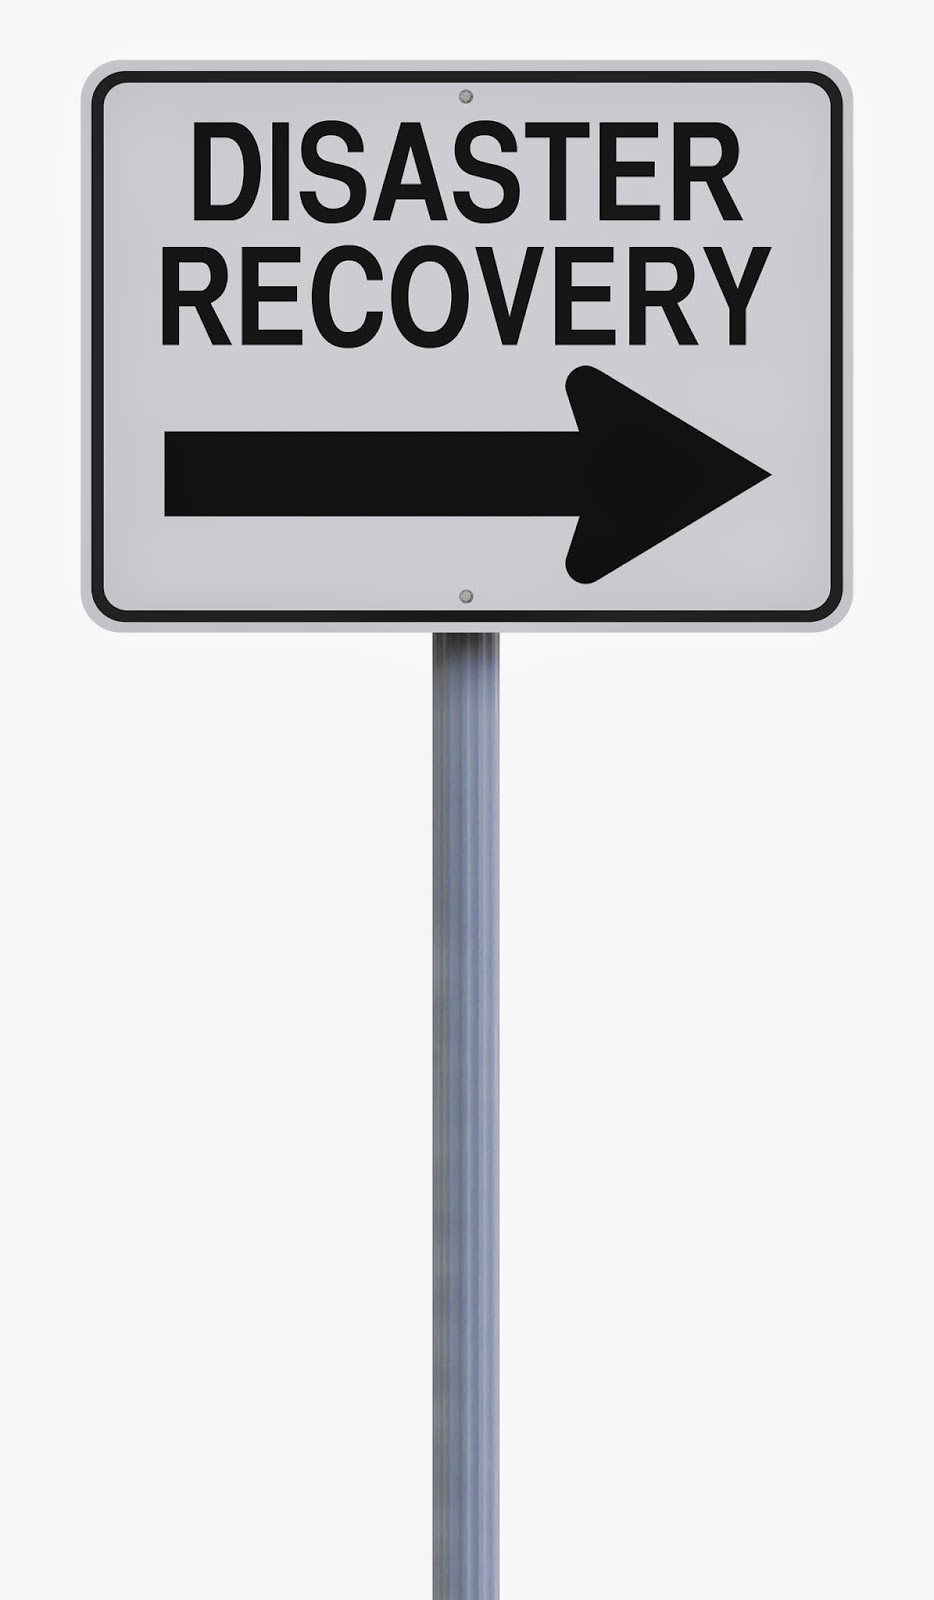 """Road sign that says """"Disaster Recovery"""""""